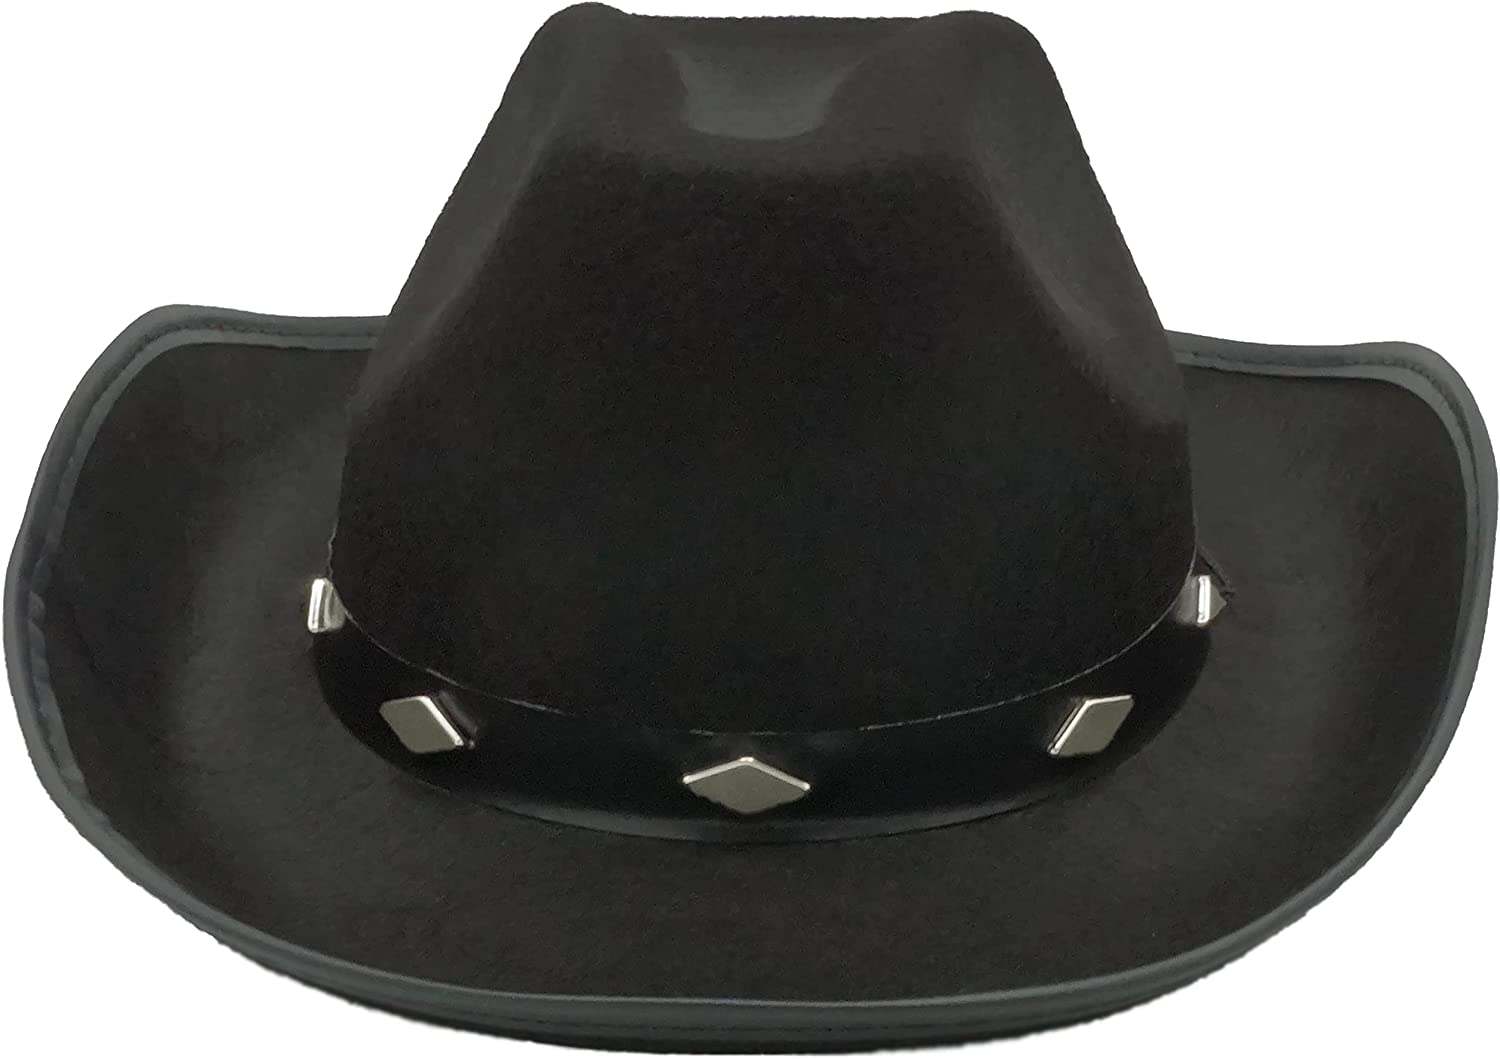 Black Cowboy Hat for Men Women Adults Teens, Felt Studded Cowgirl Hat for Women Western Party, Cowboy Costume Hat